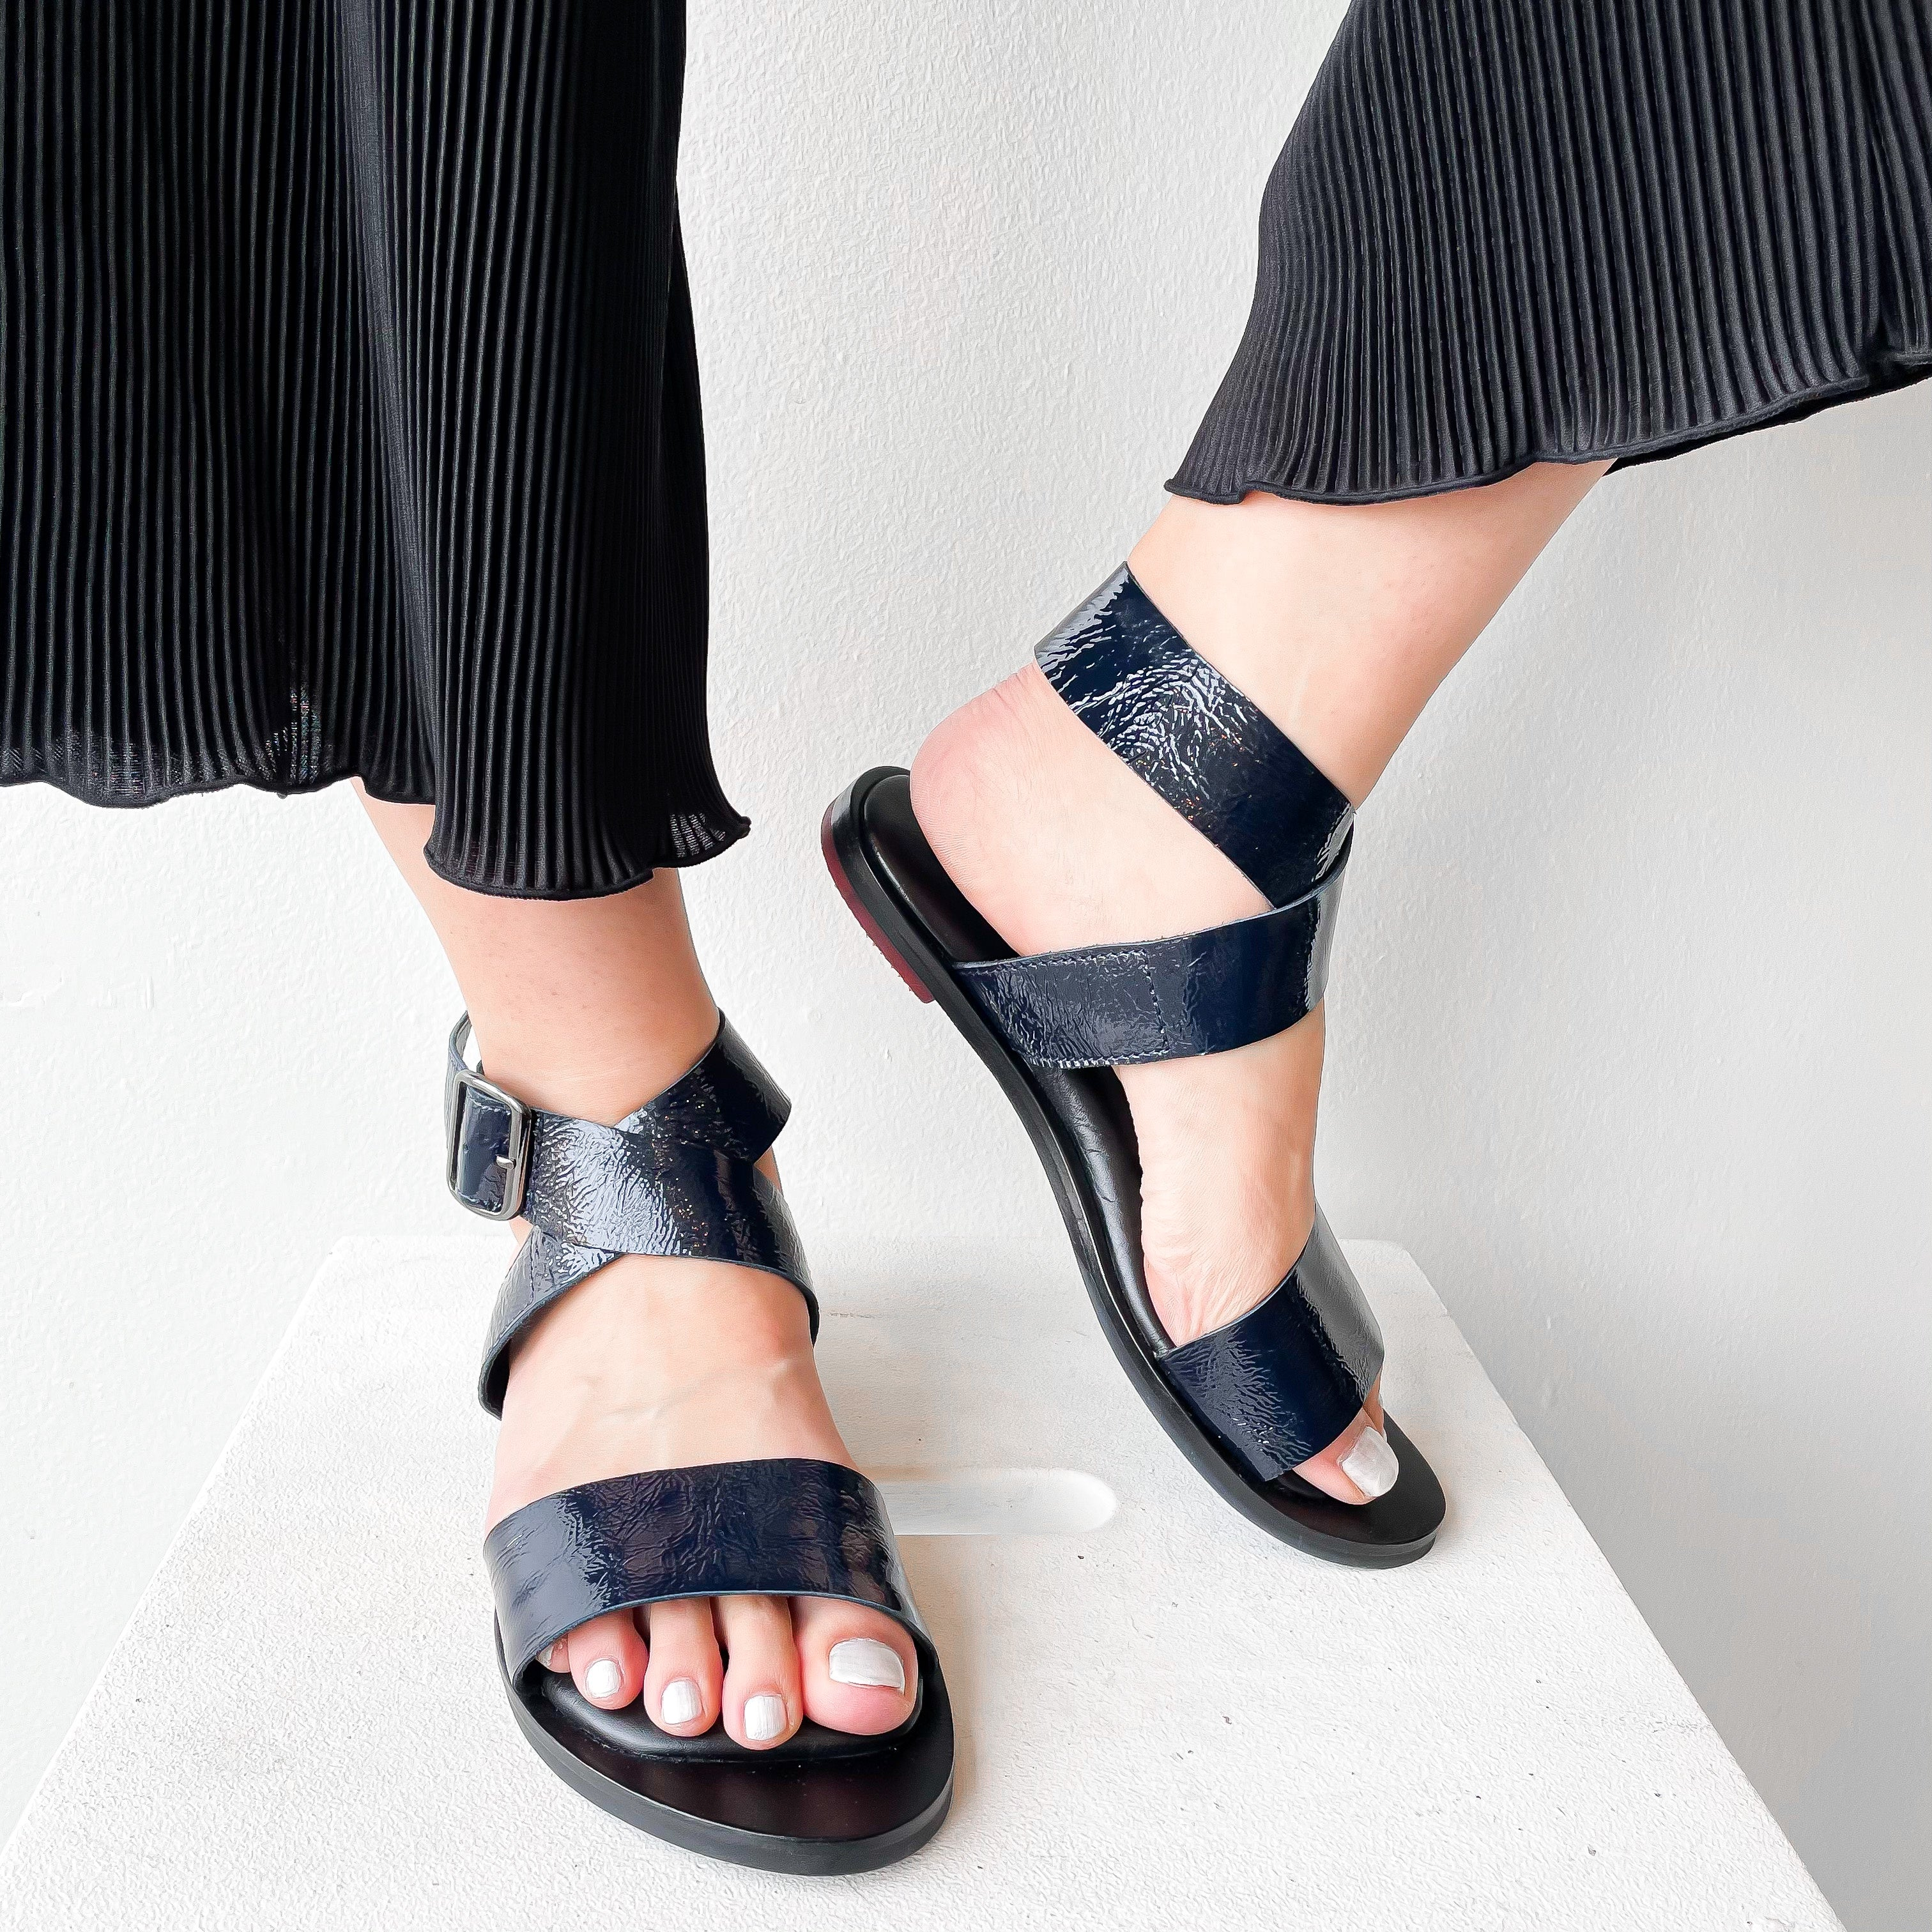 SS21 712028 | Yuduki - Ankle Cross Strap Sandals- Navy | Yuko Imanishi+